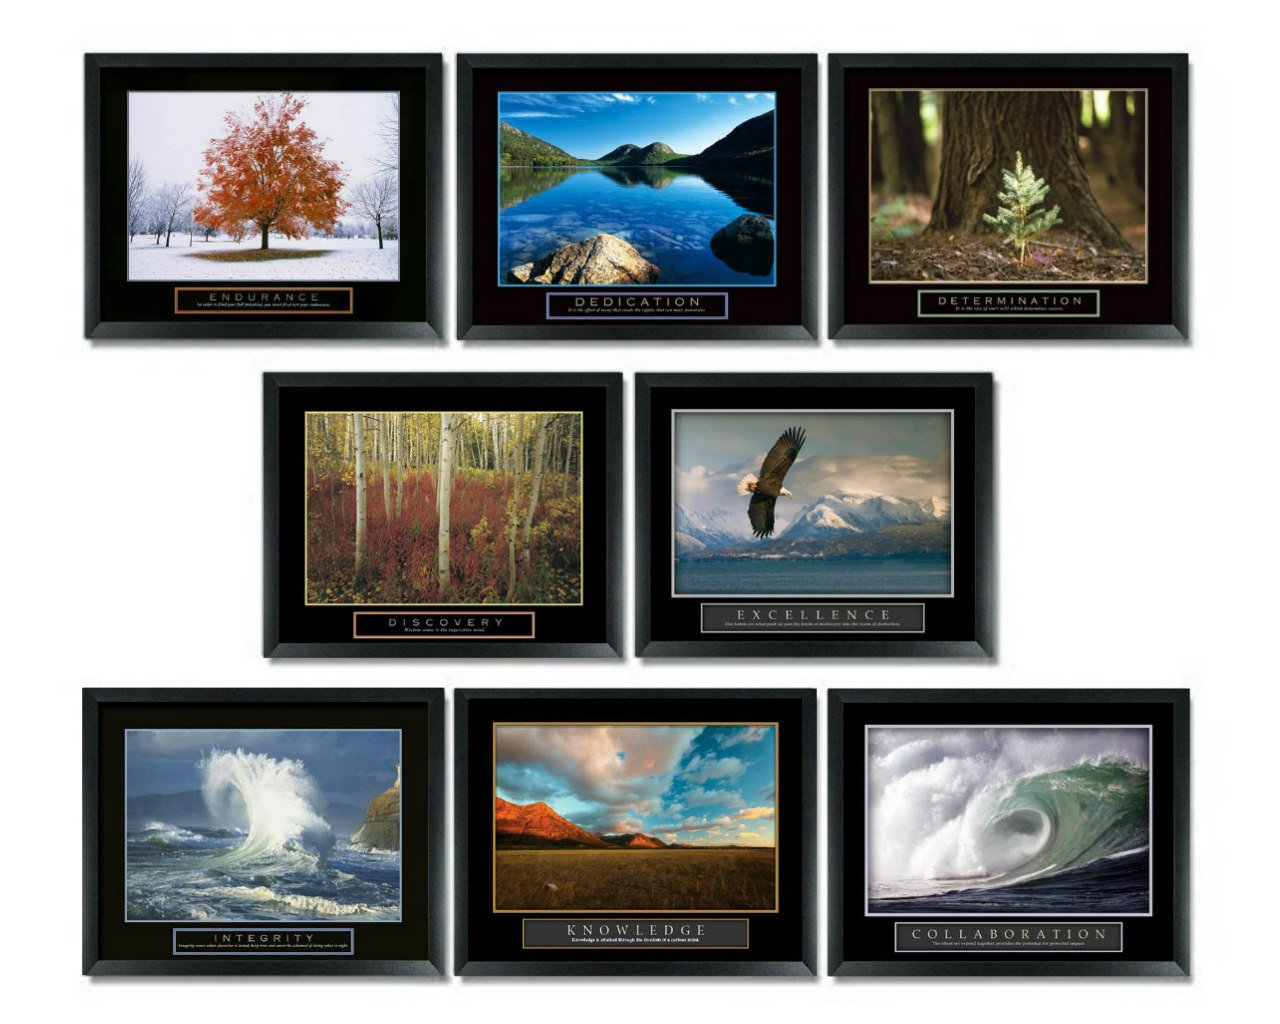 8 Framed Motivational Posters Inspirational Office Decor